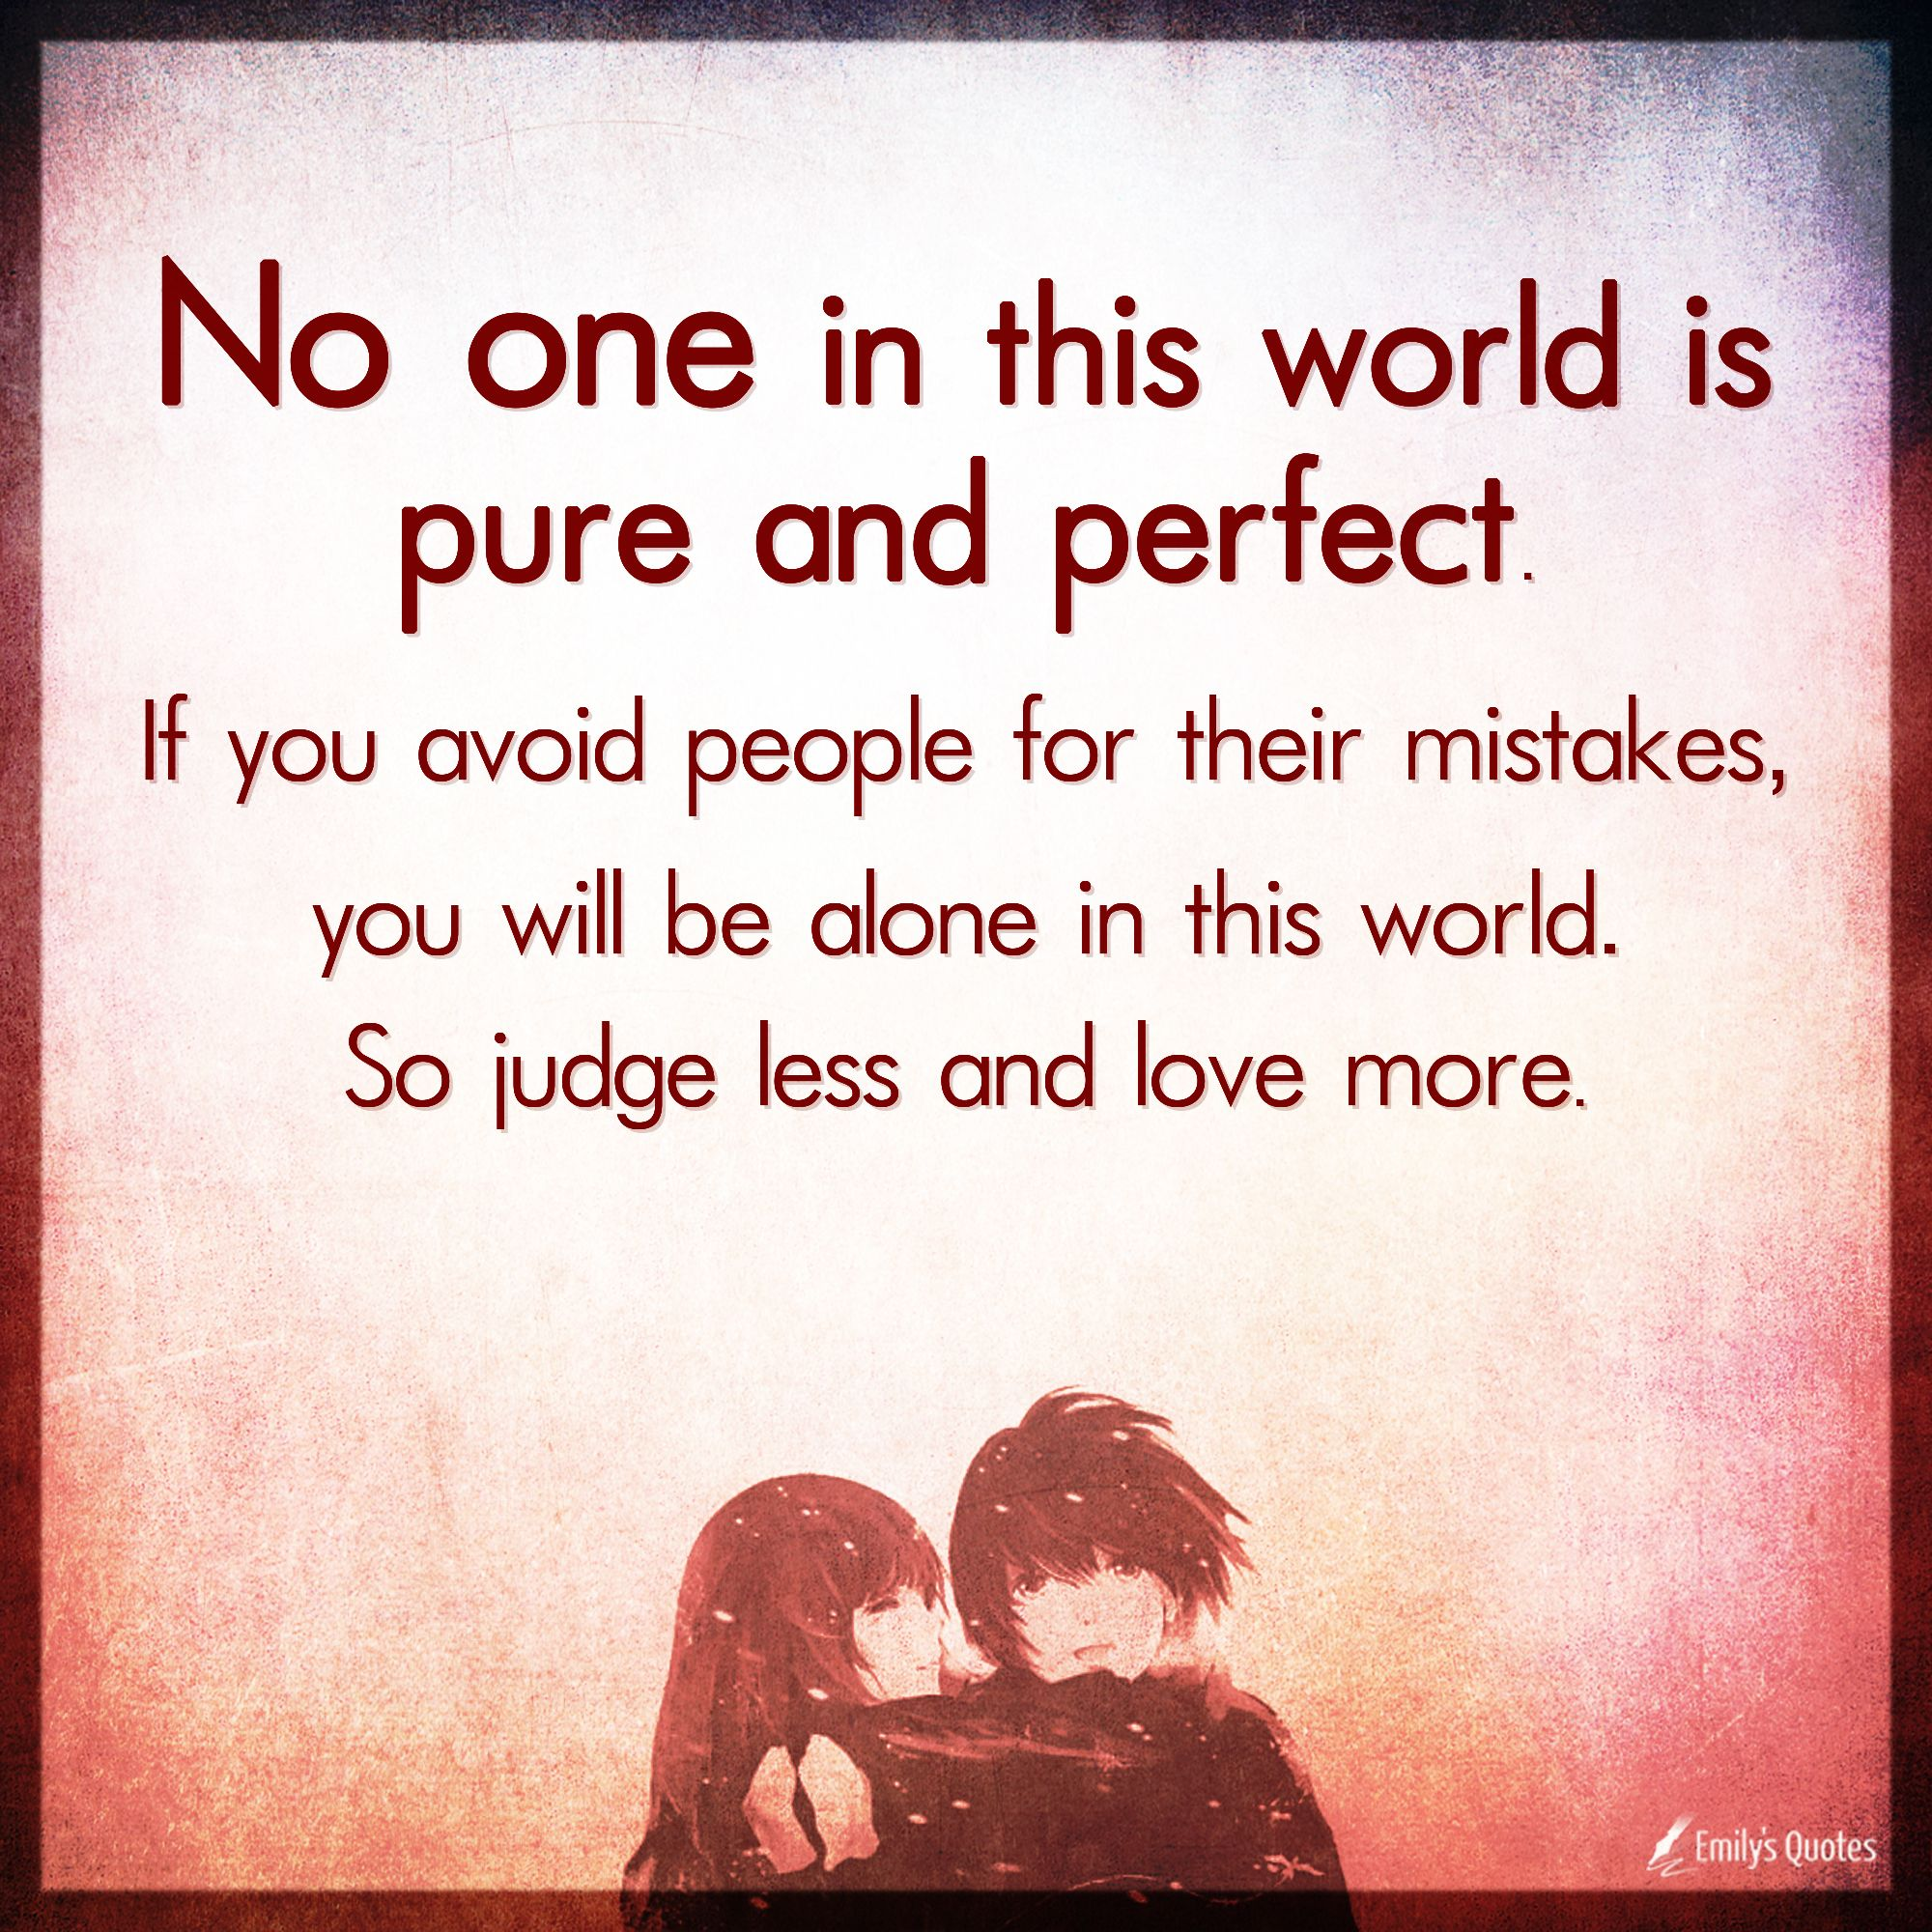 No one in this world is pure and perfect. If you avoid